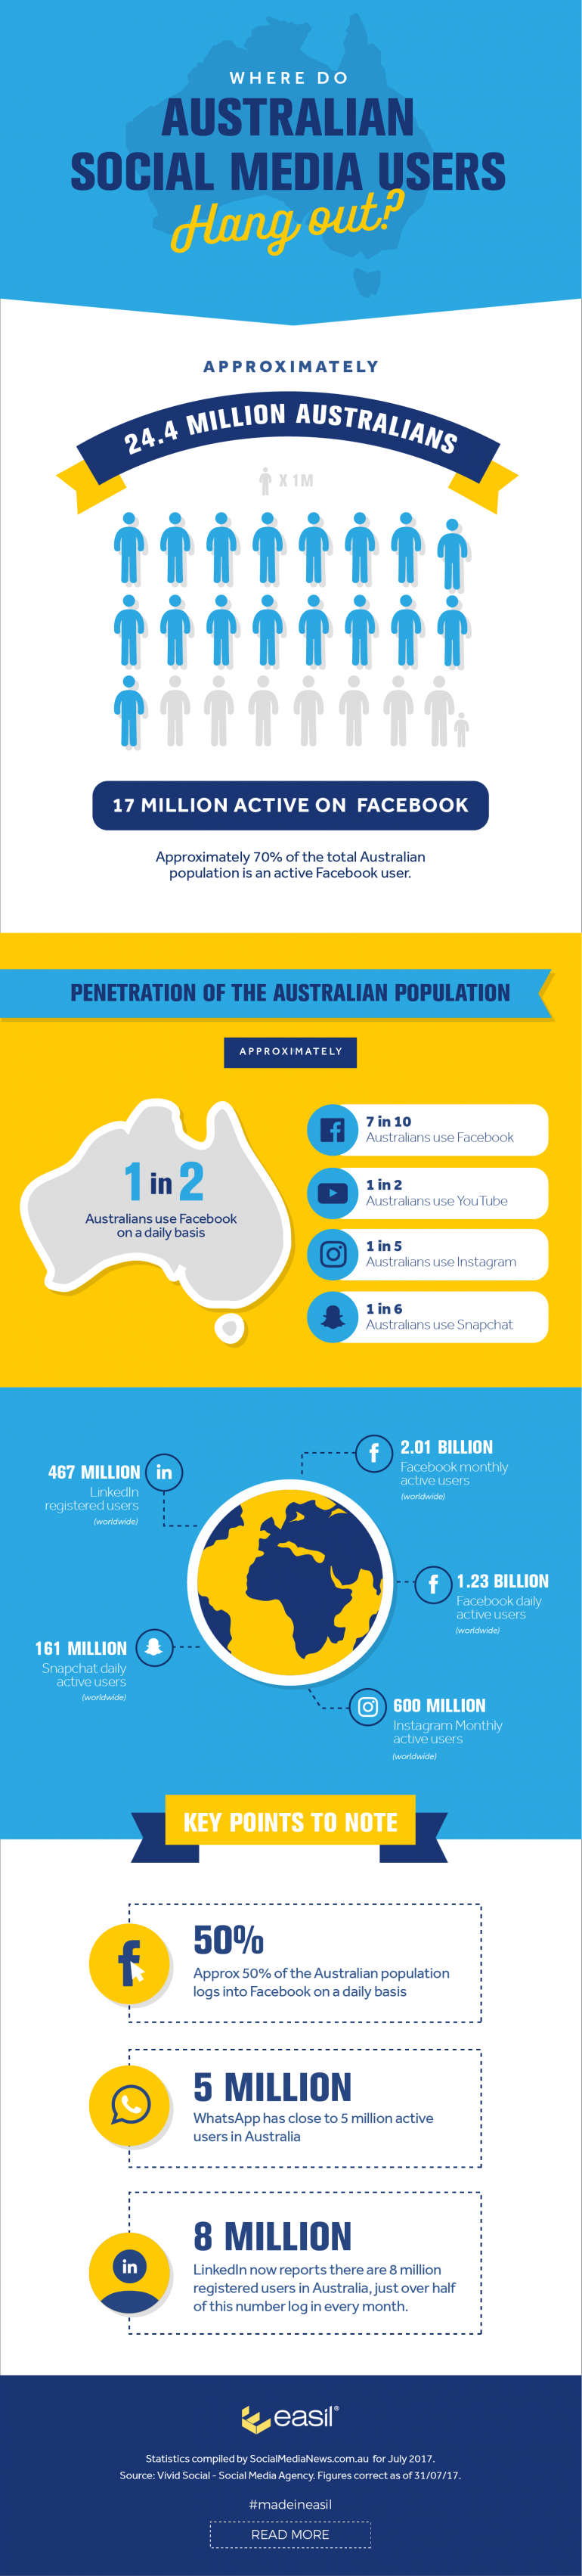 Infographic – Where do Australian Social media users hang out?